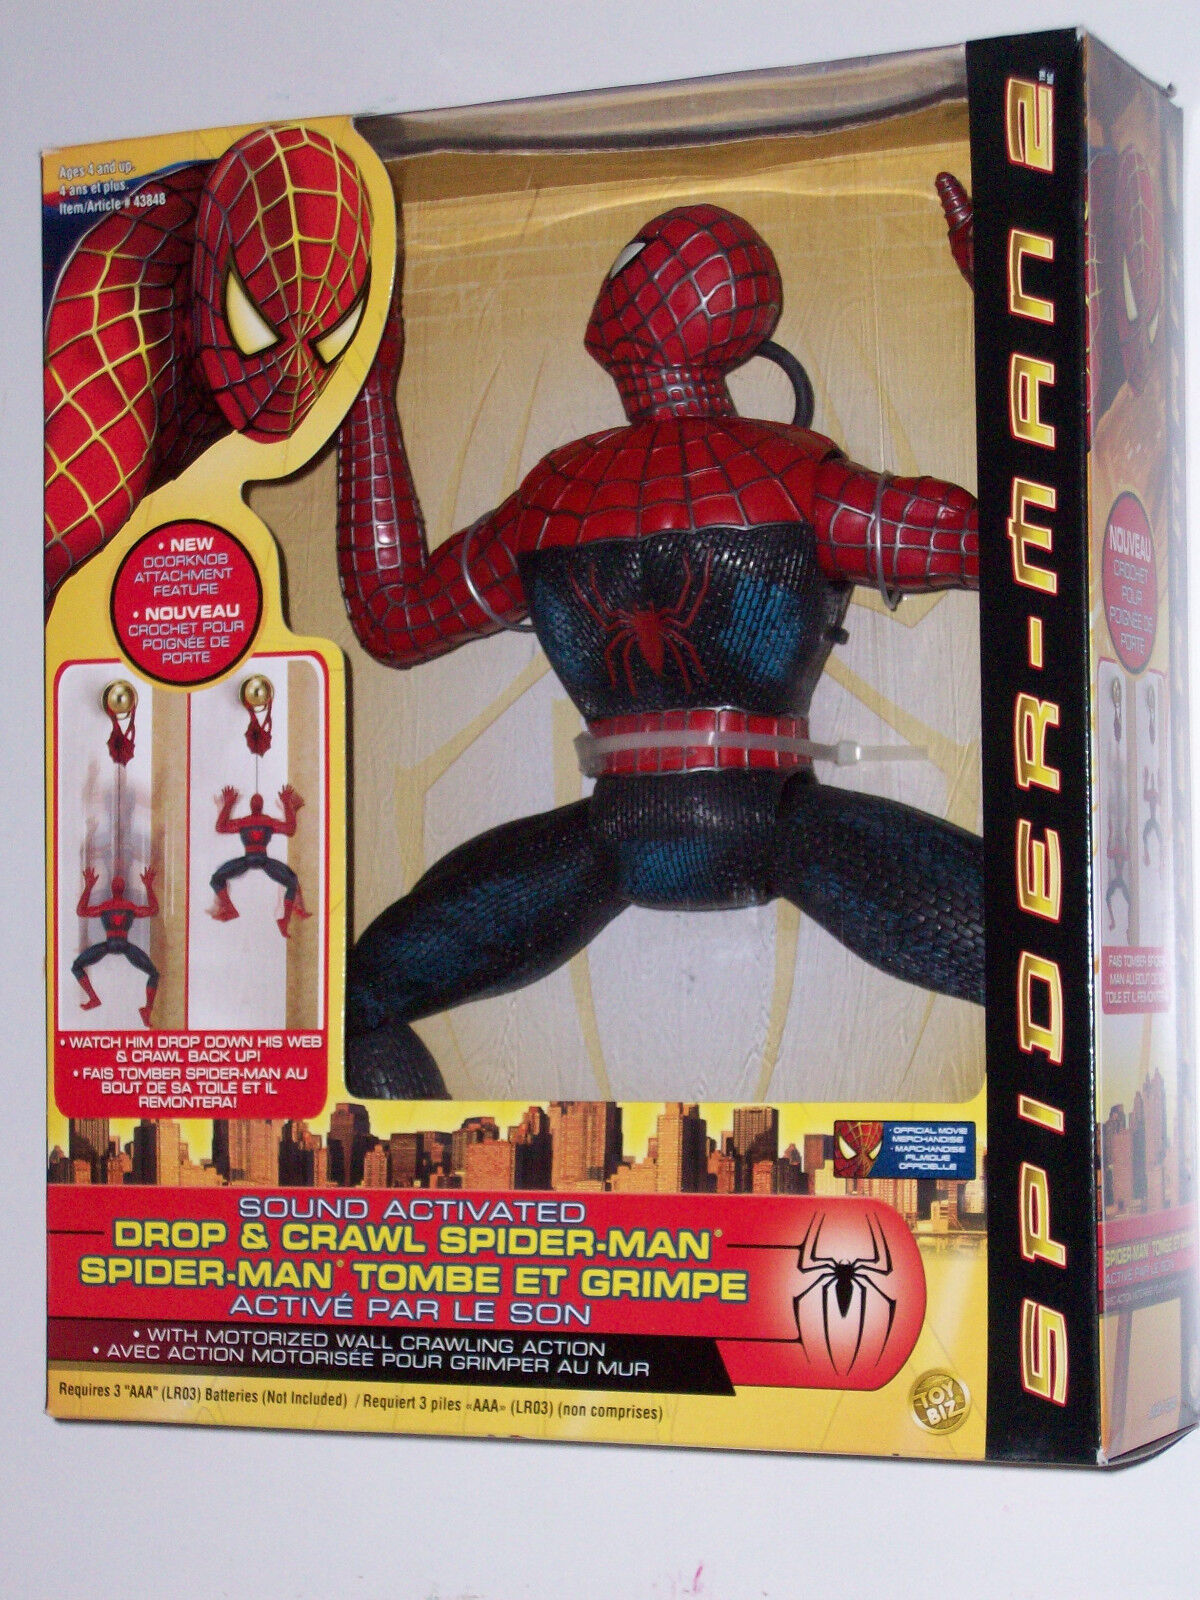 AMAZING SPIDERuomo 2 suono ACTIVATED DROP & CRAWL cifra MIB giocattolo BIZ MARVELNOW1